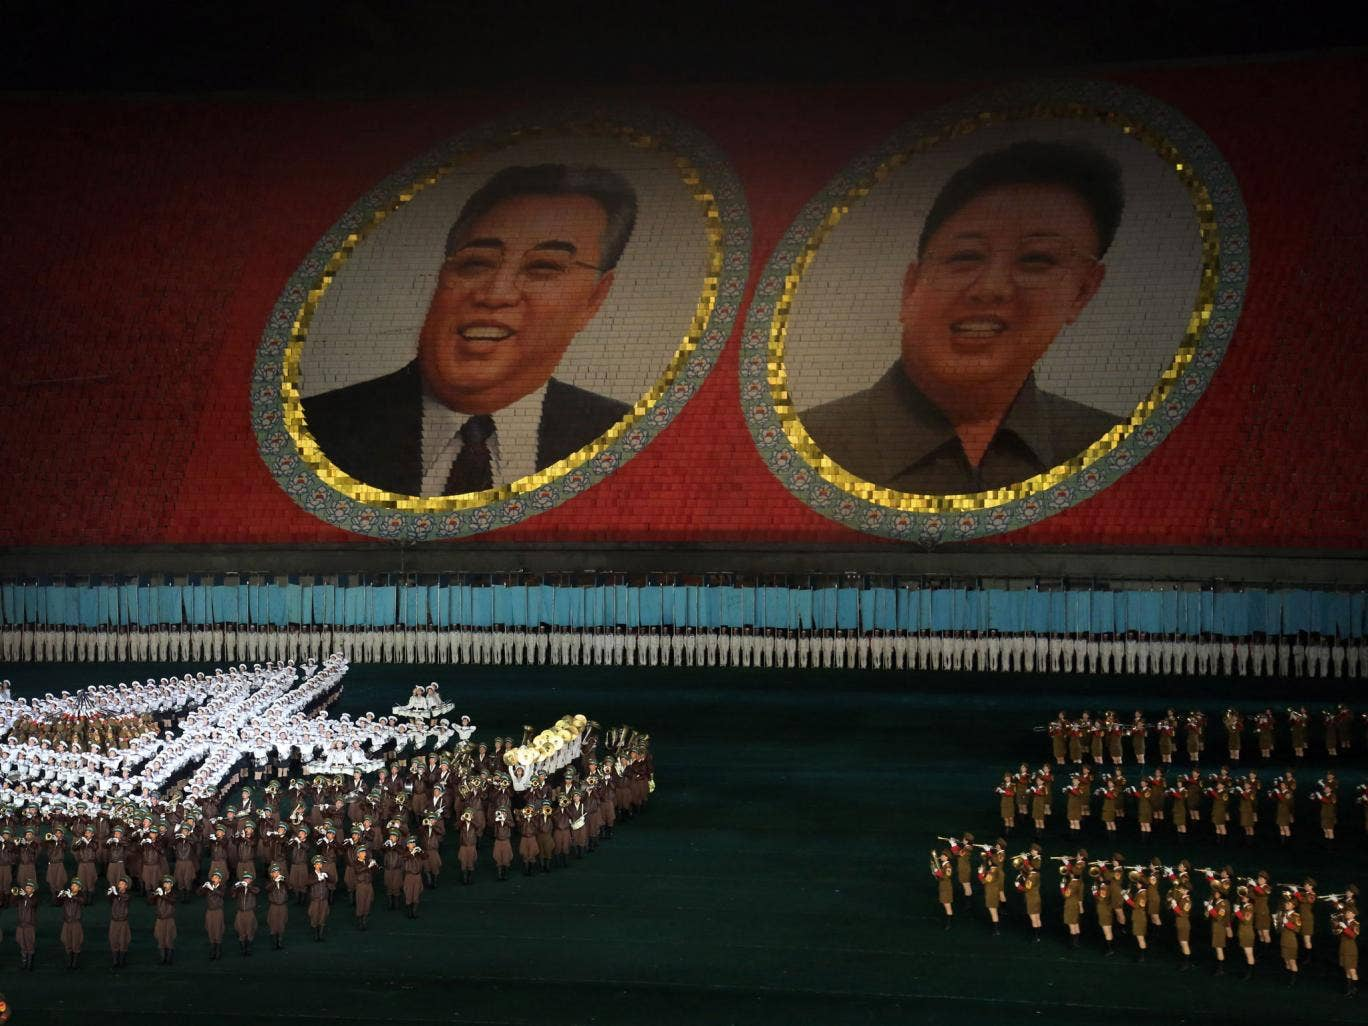 Under Kim Jong-un modern culture and technology have loosened the grip of the North Korean state – imposed by his father and grandfather, pictured, – and altered the world-view of its population